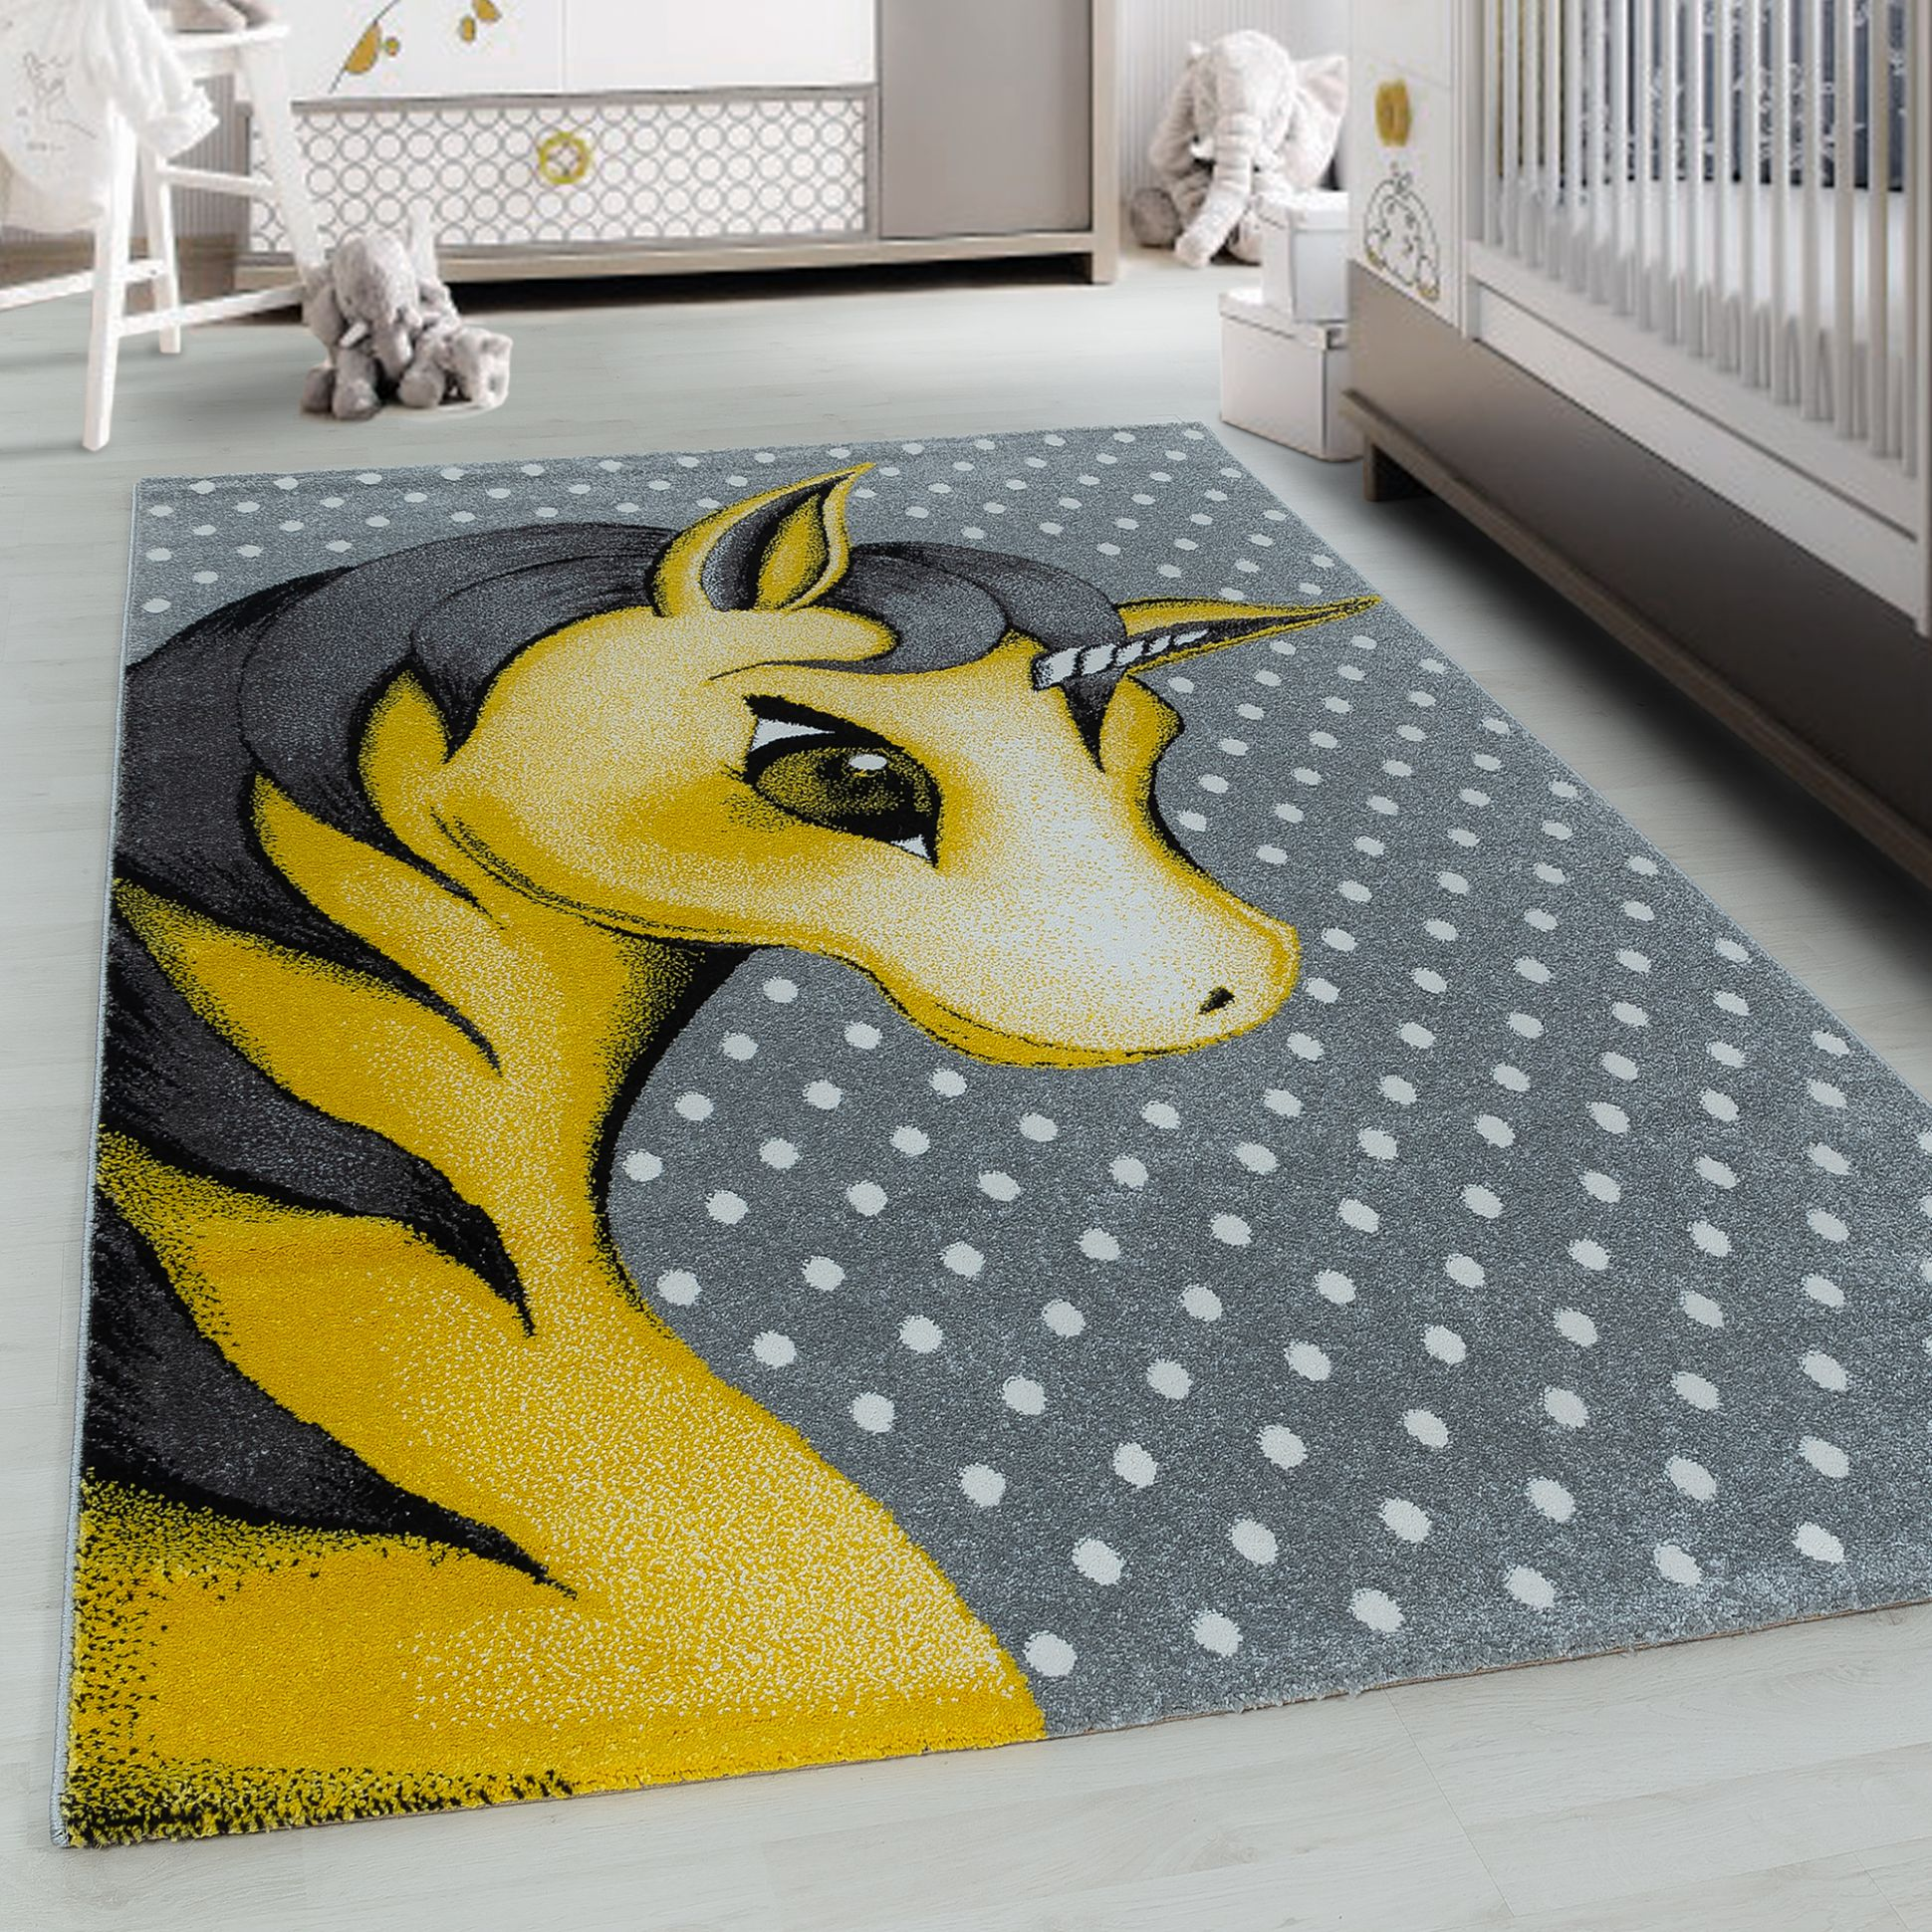 TEPPIUM Kids Play Mat rug Baby Room Unicorn Carpet Yellow carpet | Ceres  Webshop - baby room mat